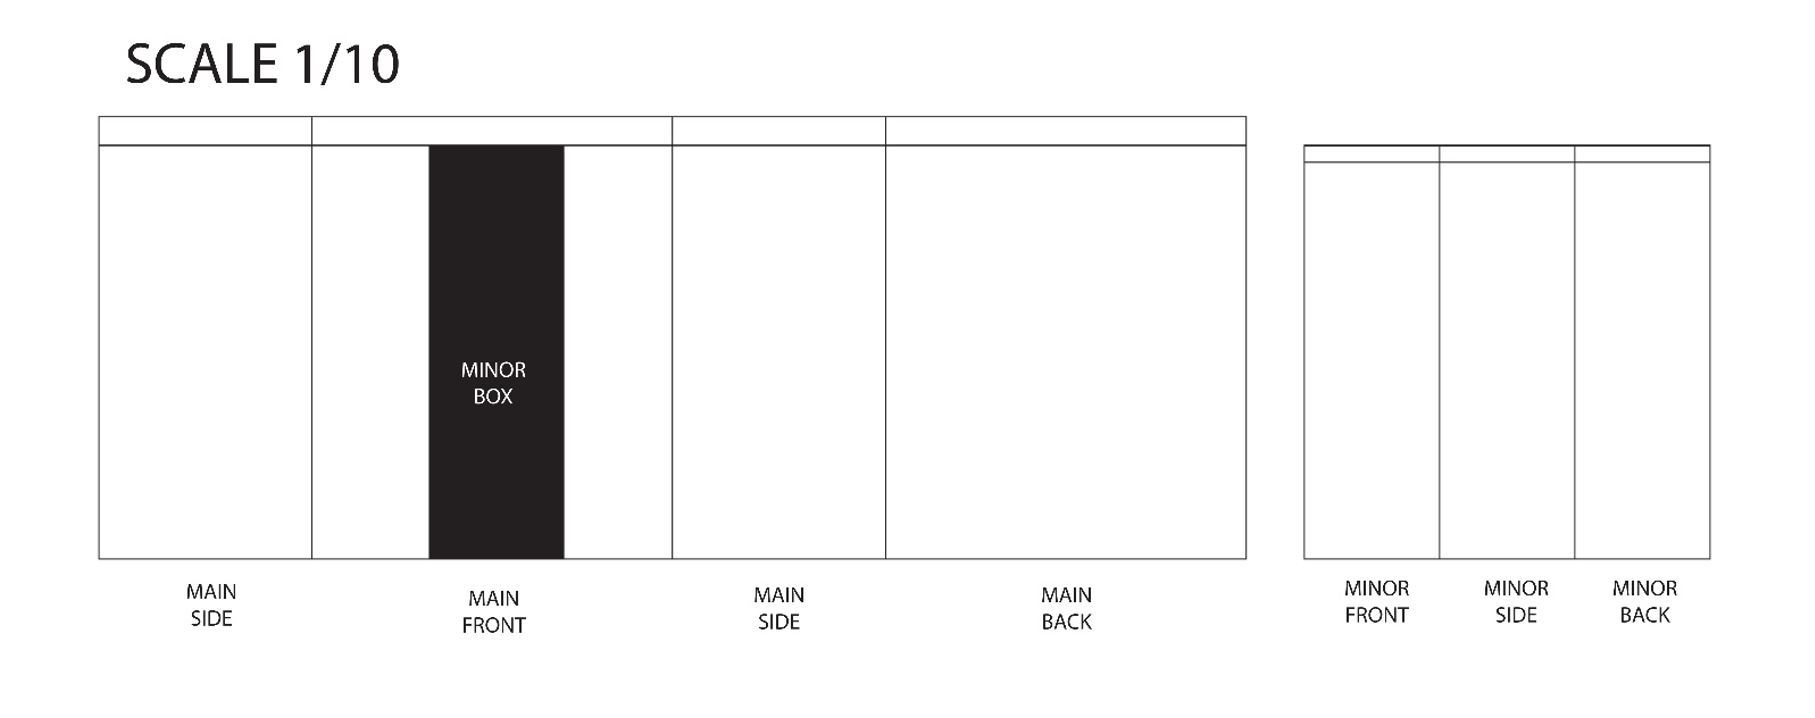 Scale for Traffic Boxes image broken down with dimensions